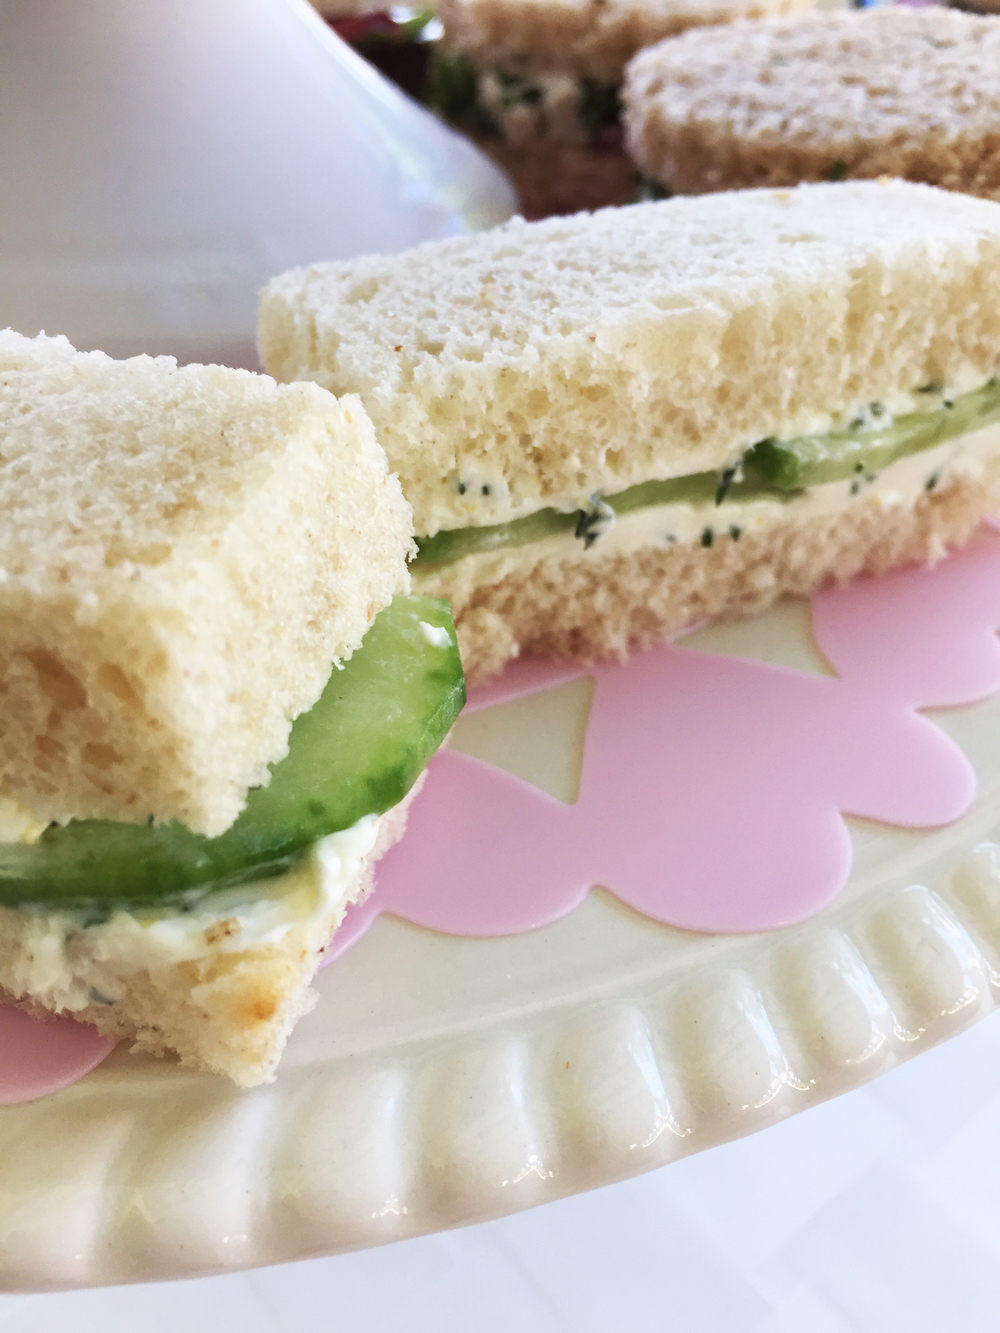 Thinly sliced cucumber with dill and cream cheese finger sandwiches.